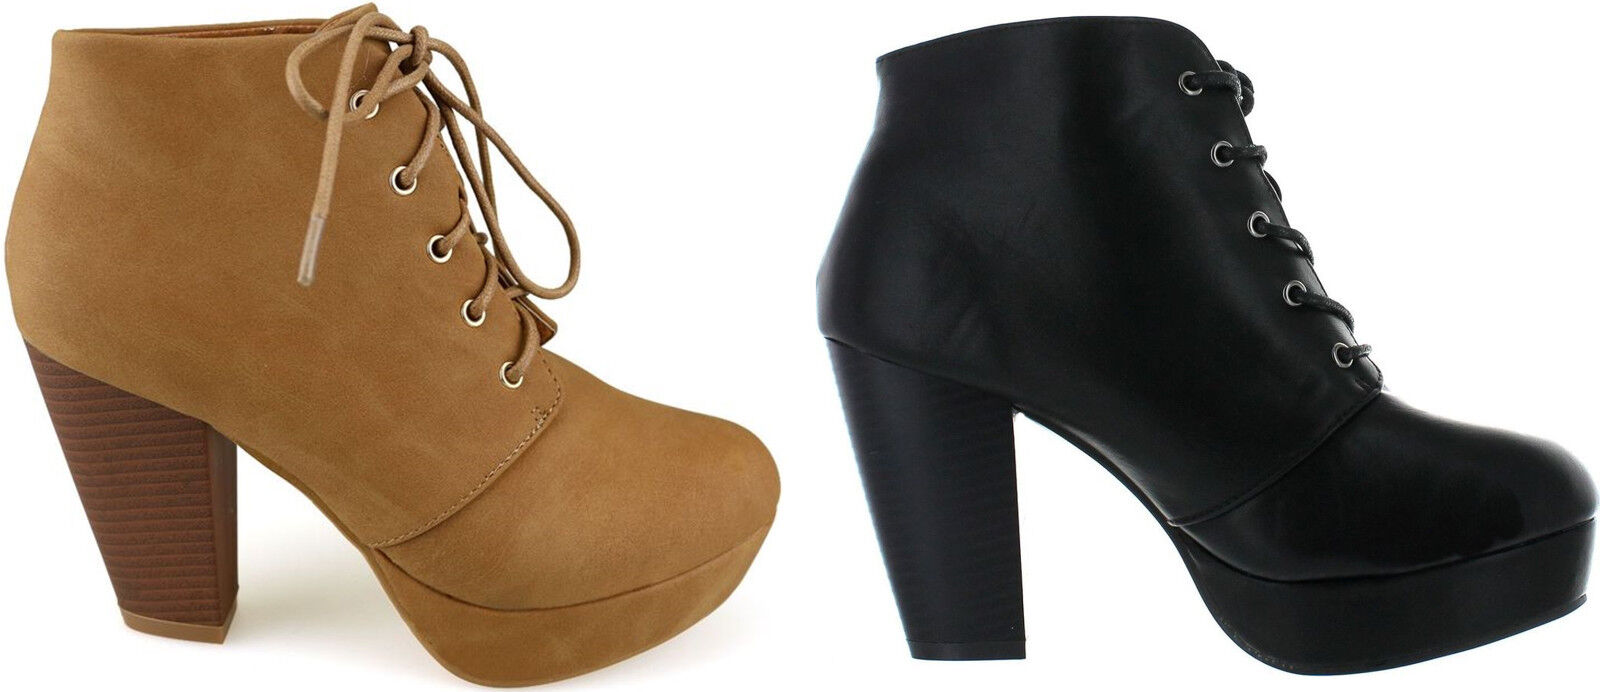 Block Chunky High Heel Ankle High Lace Up Closed Round Toe Booties Boots Shoes